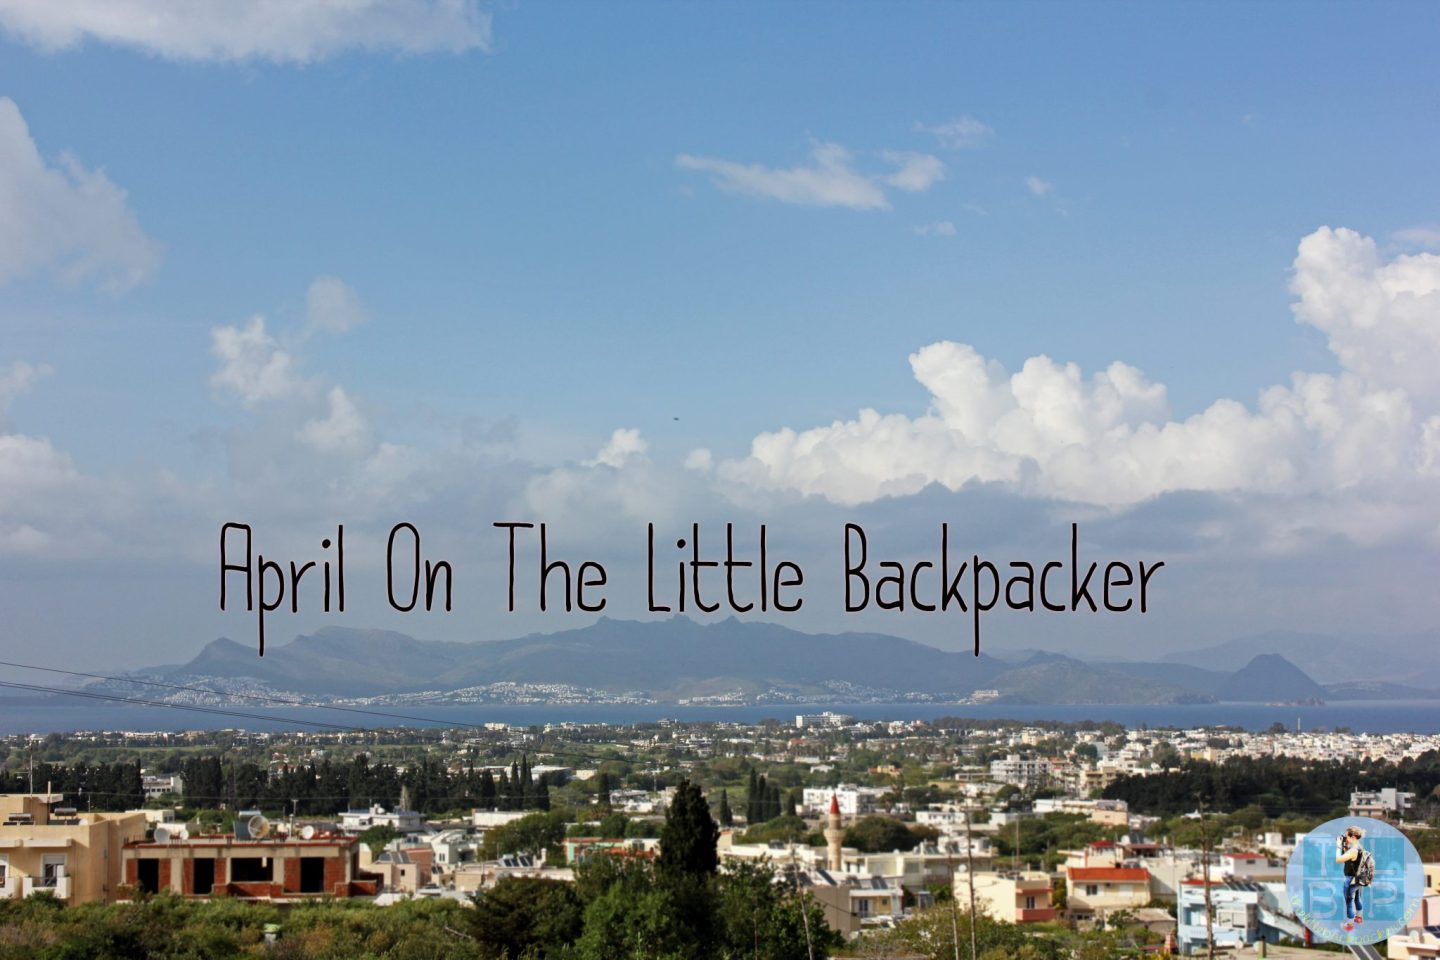 April On The Little Backpacker